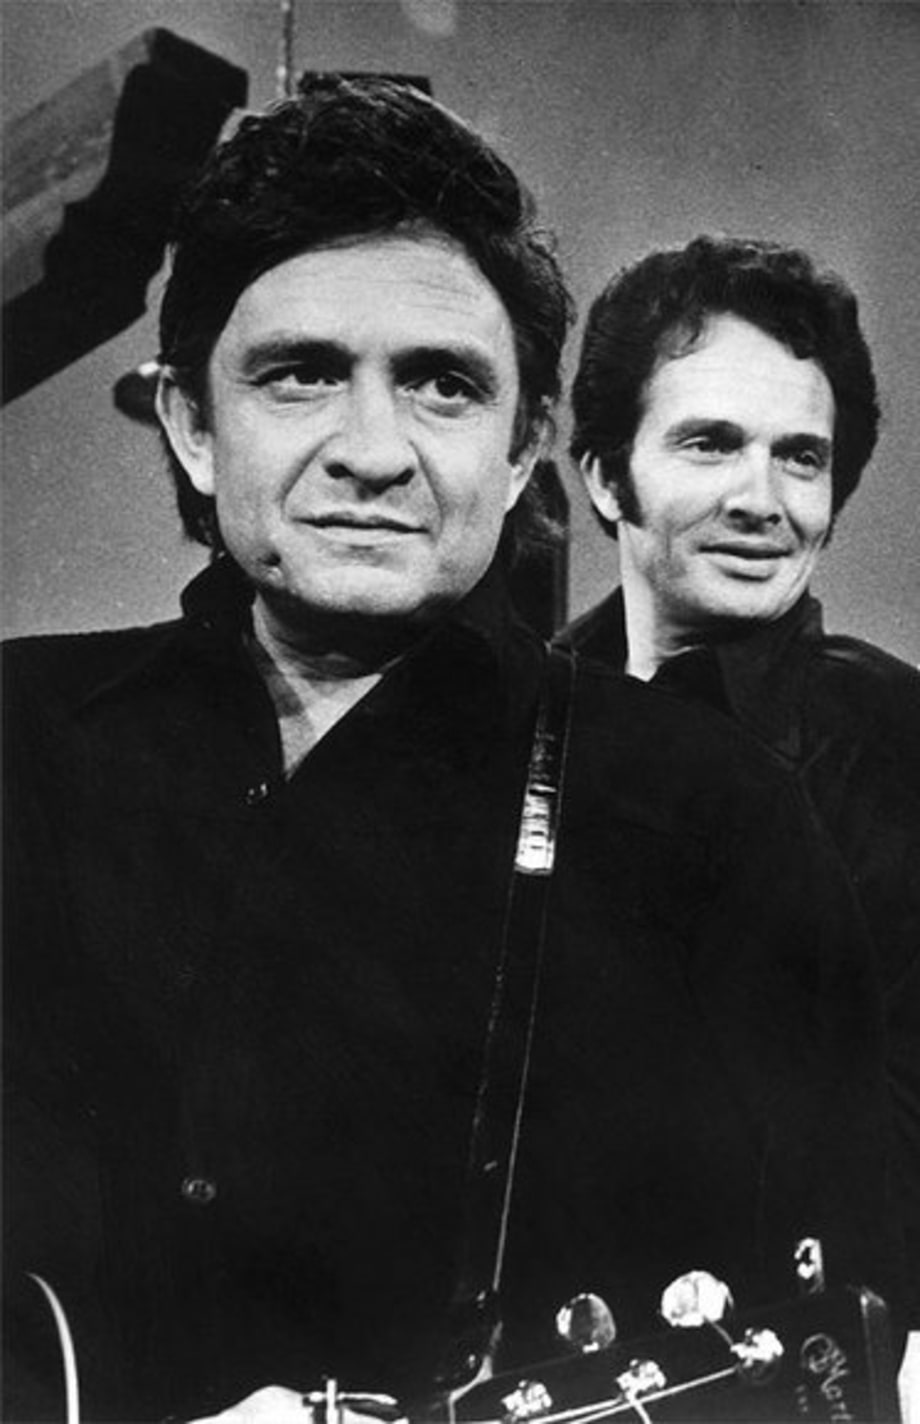 Merle Haggard: 1963: Johnny Cash